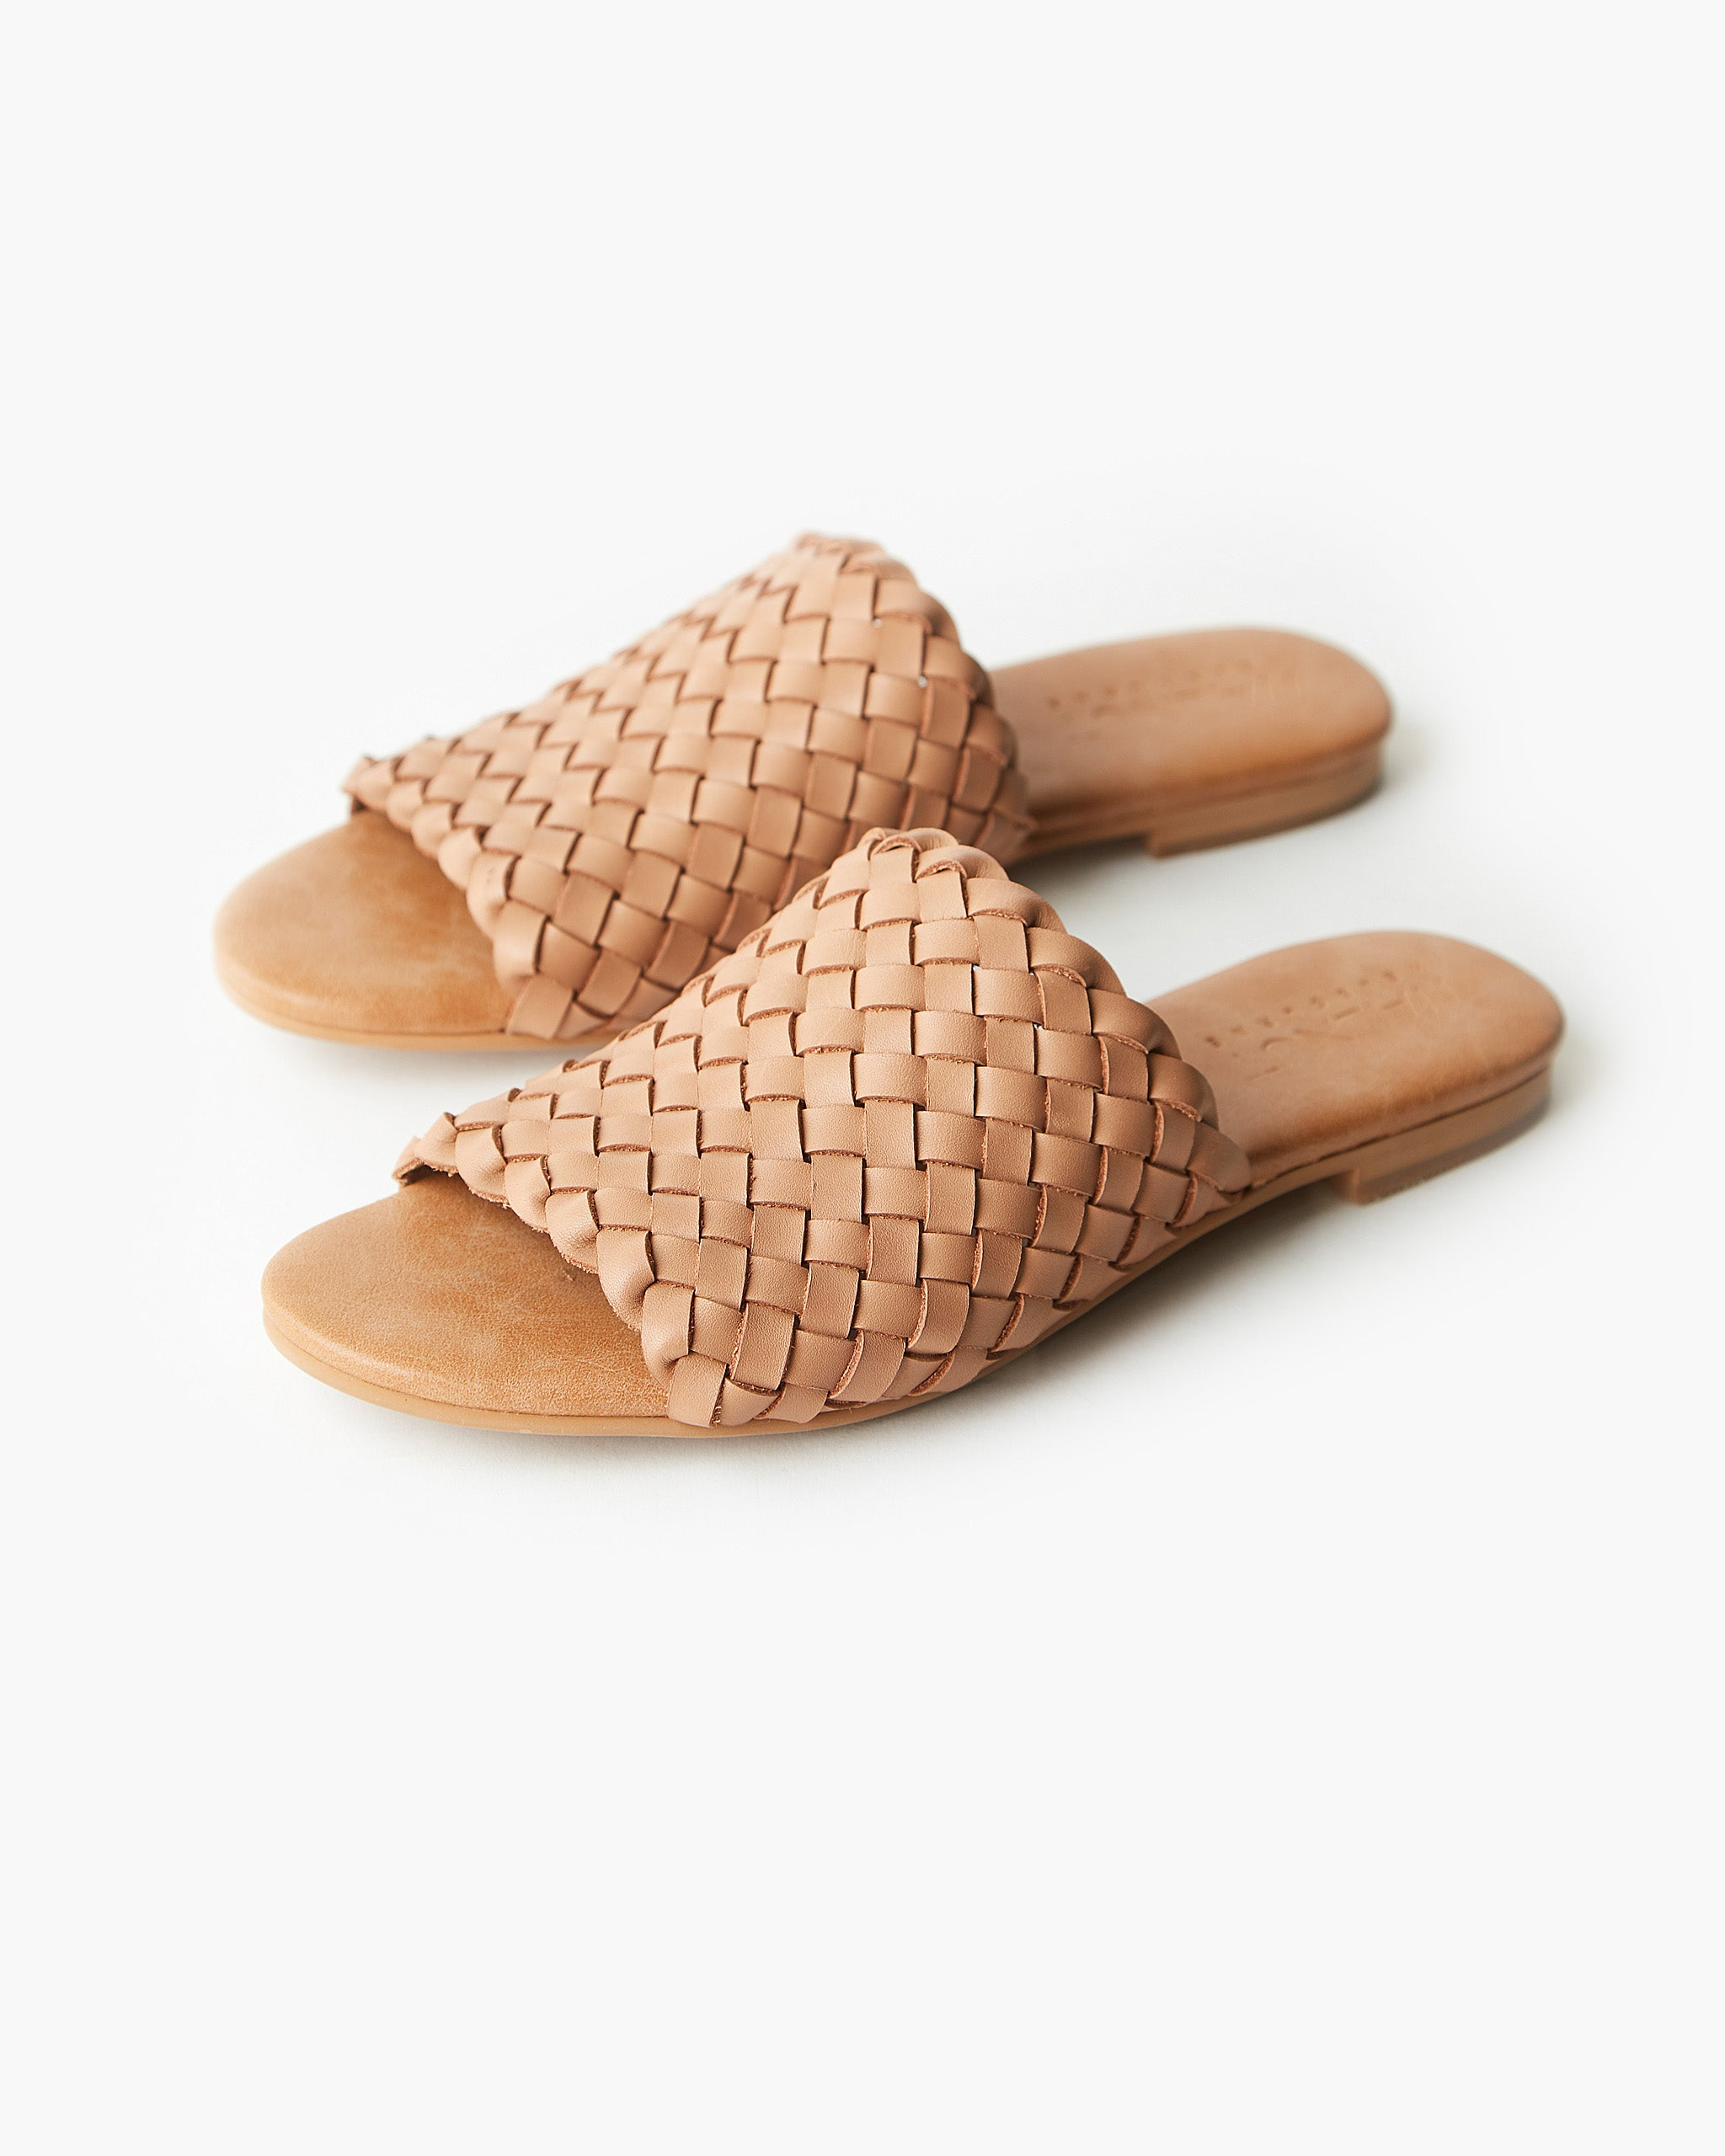 Vienna Woven Leather Slide - Tan